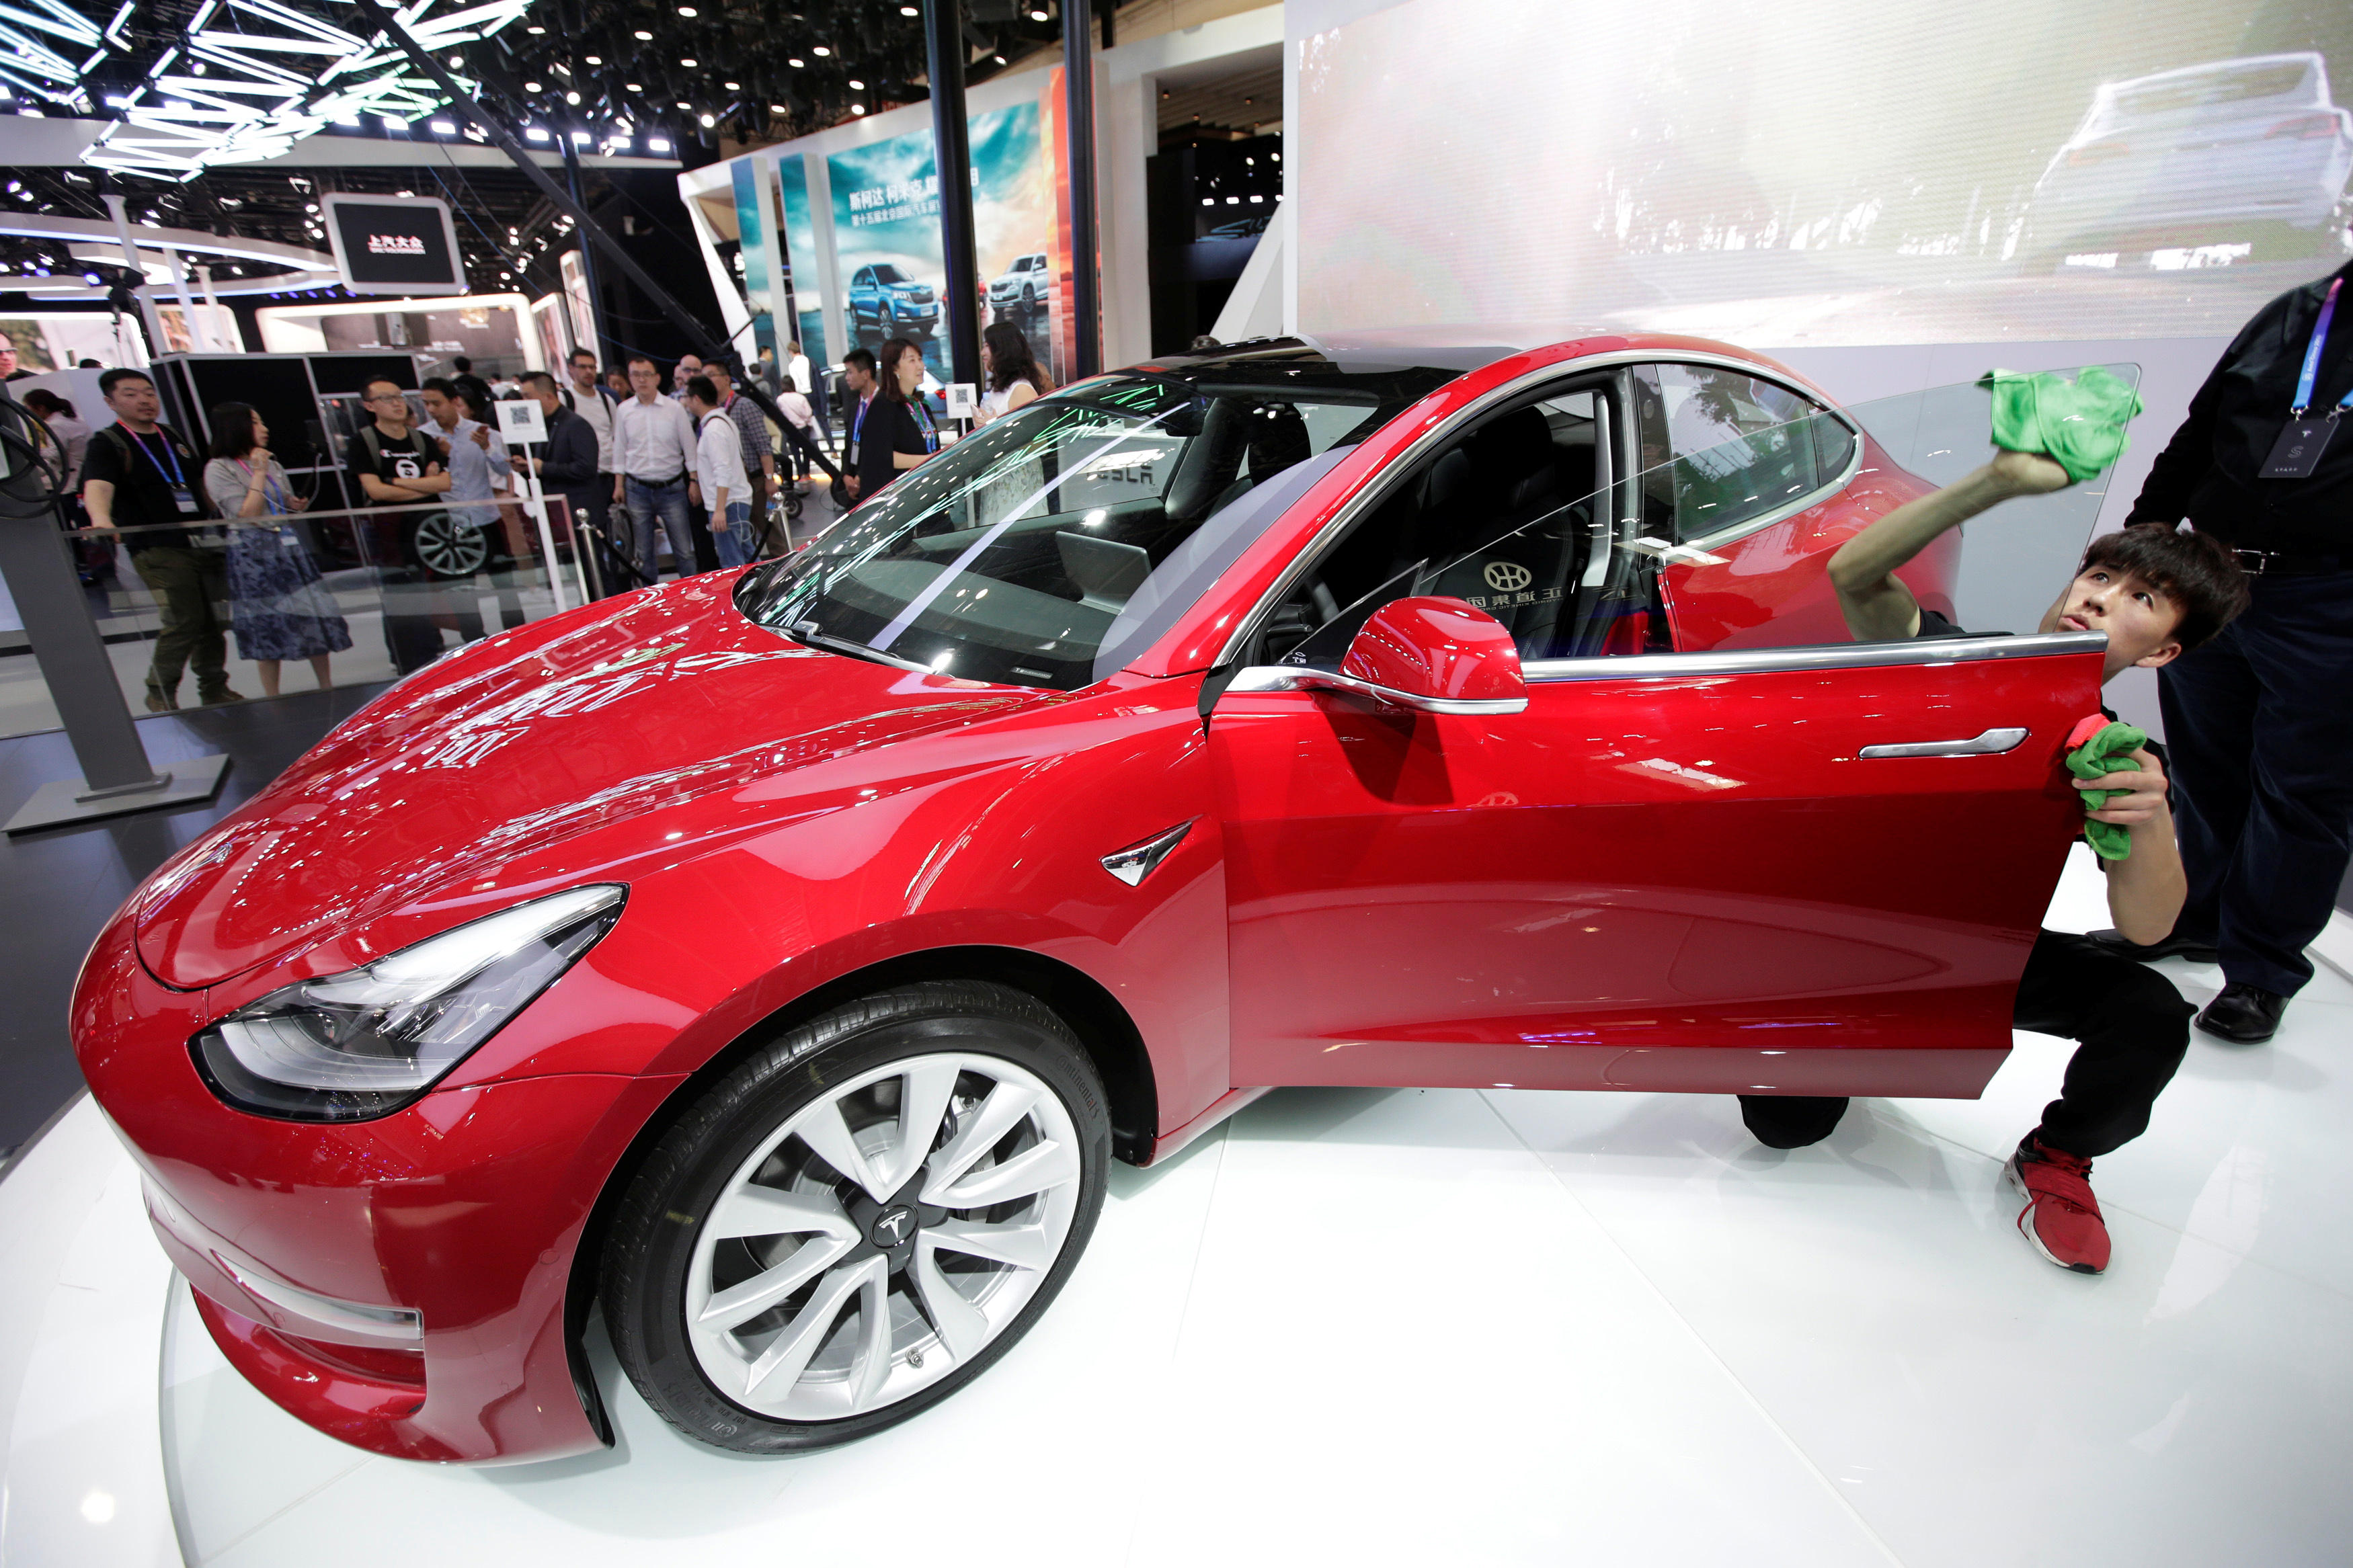 375dc4338 Tesla Model 3 not recommended by Consumer Reports